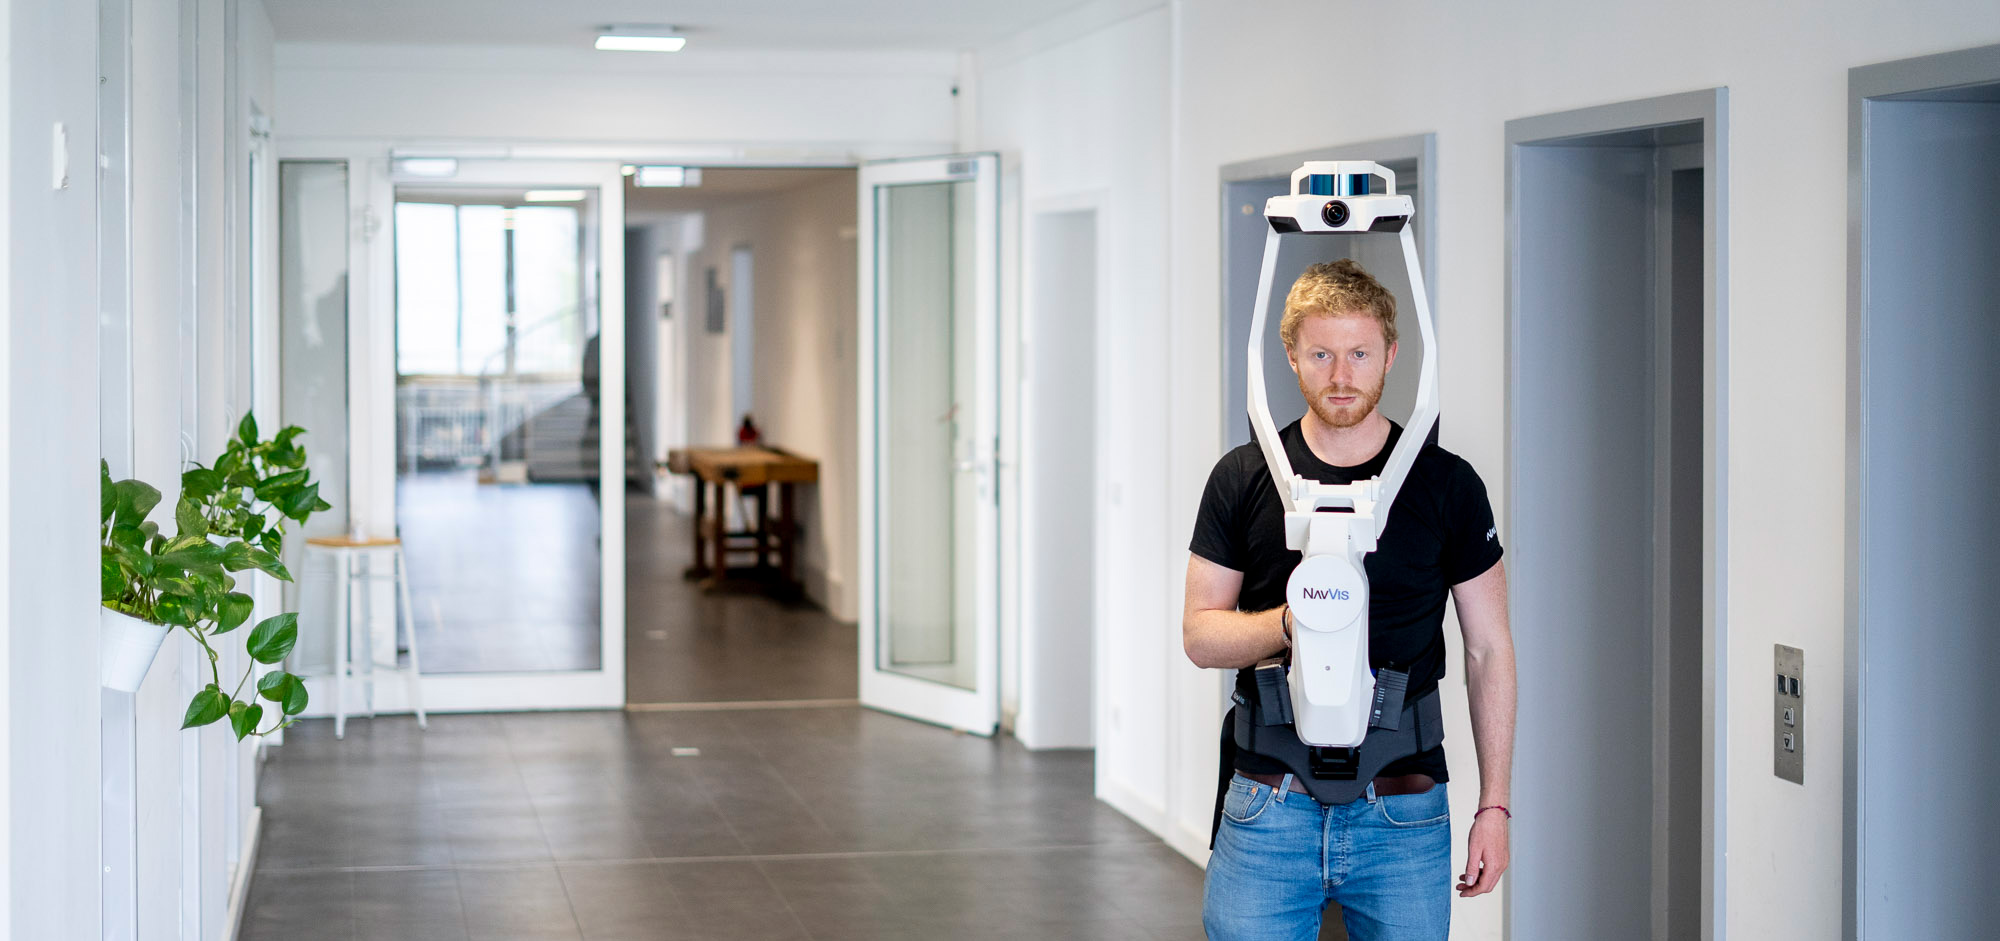 The NavVis VLX wearable indoor mobile mapping system equipped with two Velodyne Lidar Puck LITE lidar sensors